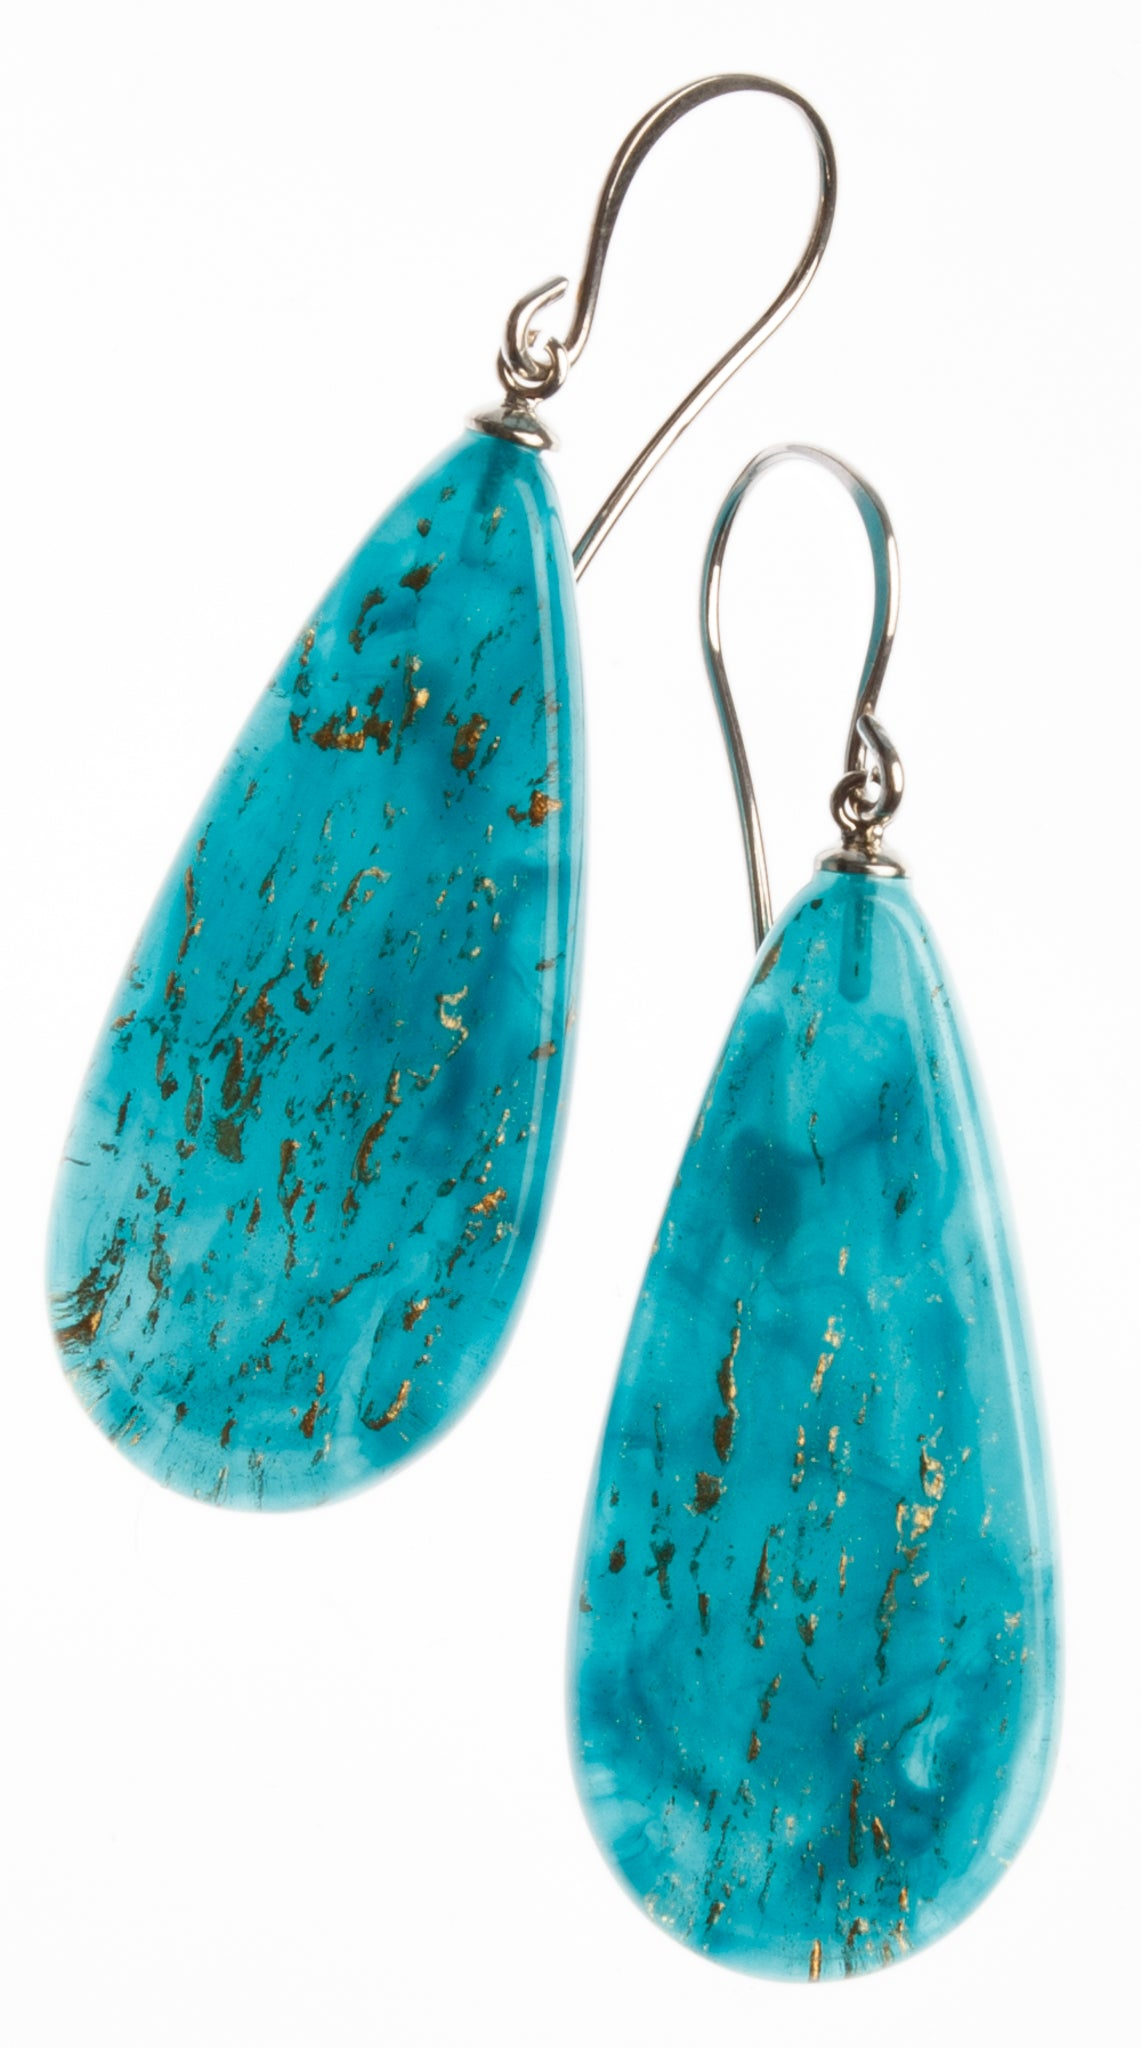 Zsiska Rhea Drop Earrings - Teal or Green with Gold Leaf Feature